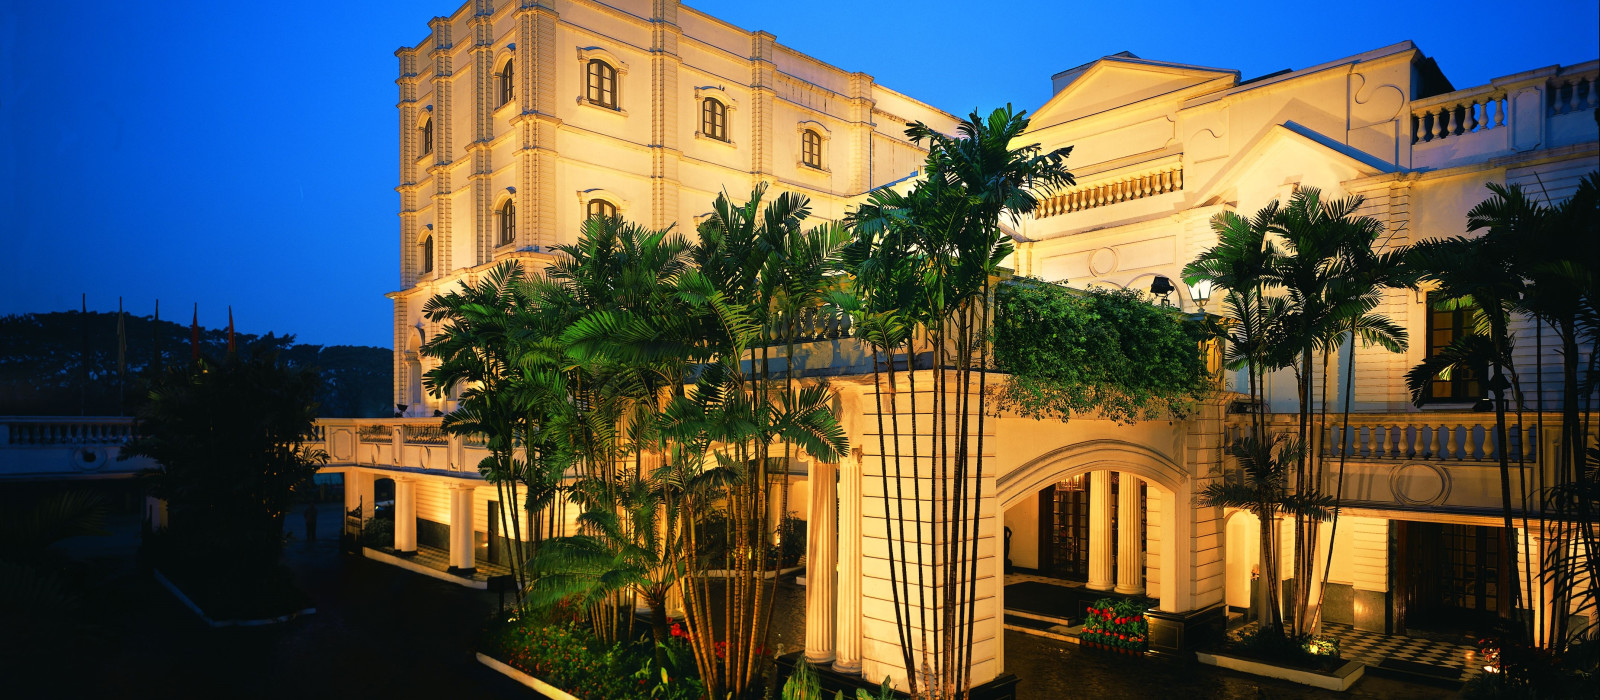 Hotel The Oberoi Grand, Kolkata Ostindien